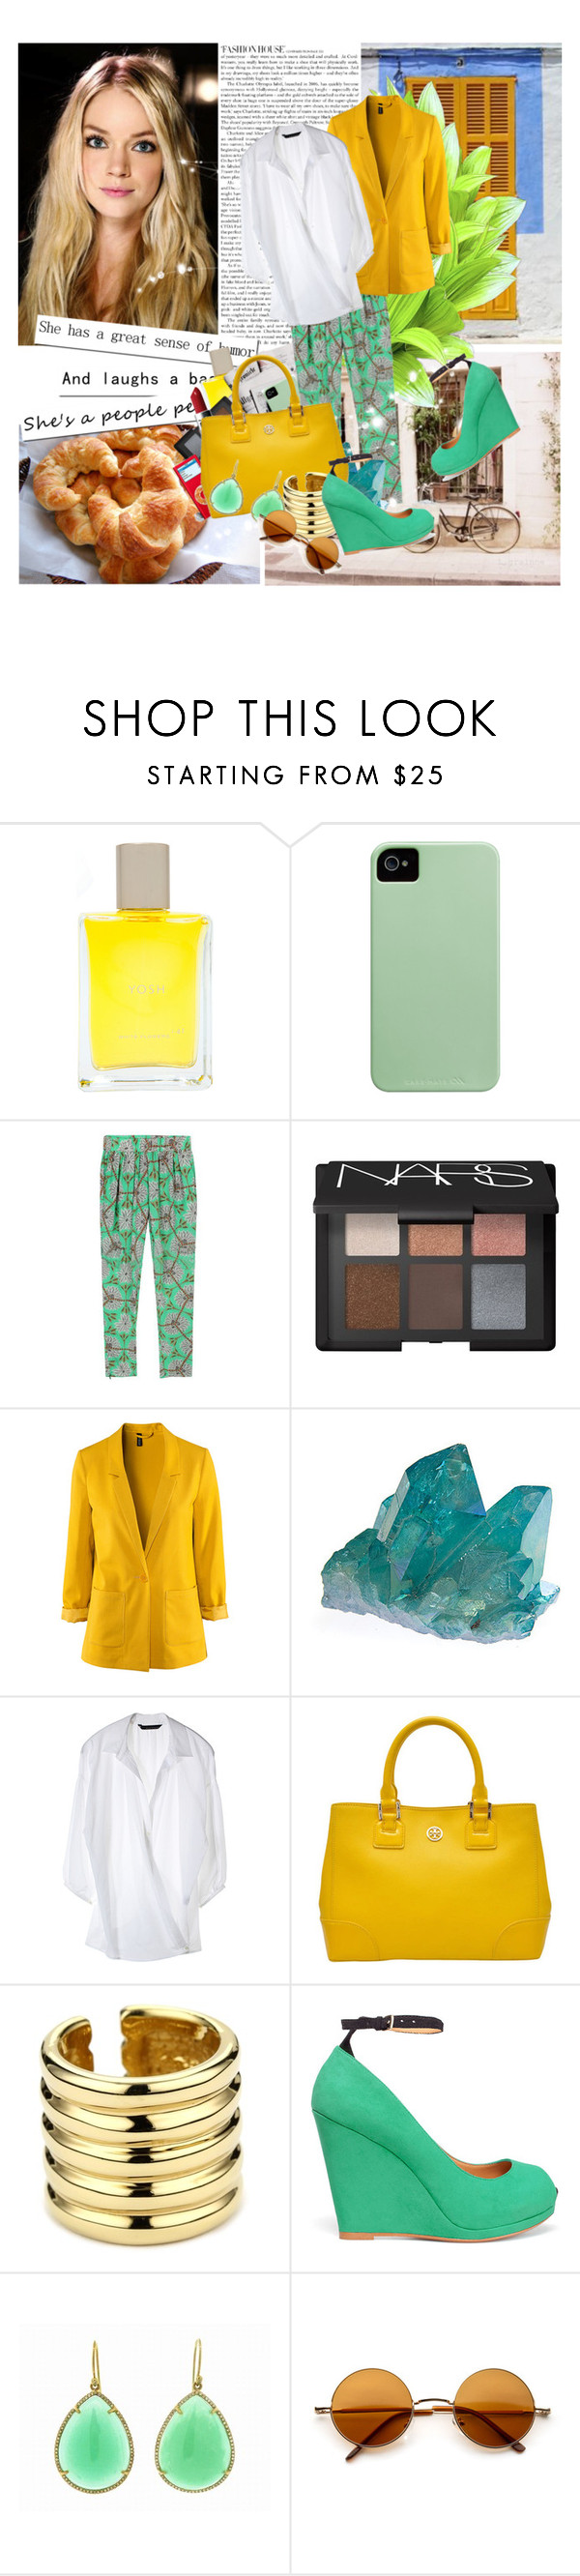 """""""Some people think it's wrong, being single isn't right. but you hurt the right person you'll be wrong all your life."""" by savemilkdrinkblood ❤ liked on Polyvore featuring Yosh, 7 For All Mankind, NARS Cosmetics, H&M, MAC Cosmetics, Tory Burch, Giuseppe Zanotti, Zara and Irene Neuwirth"""